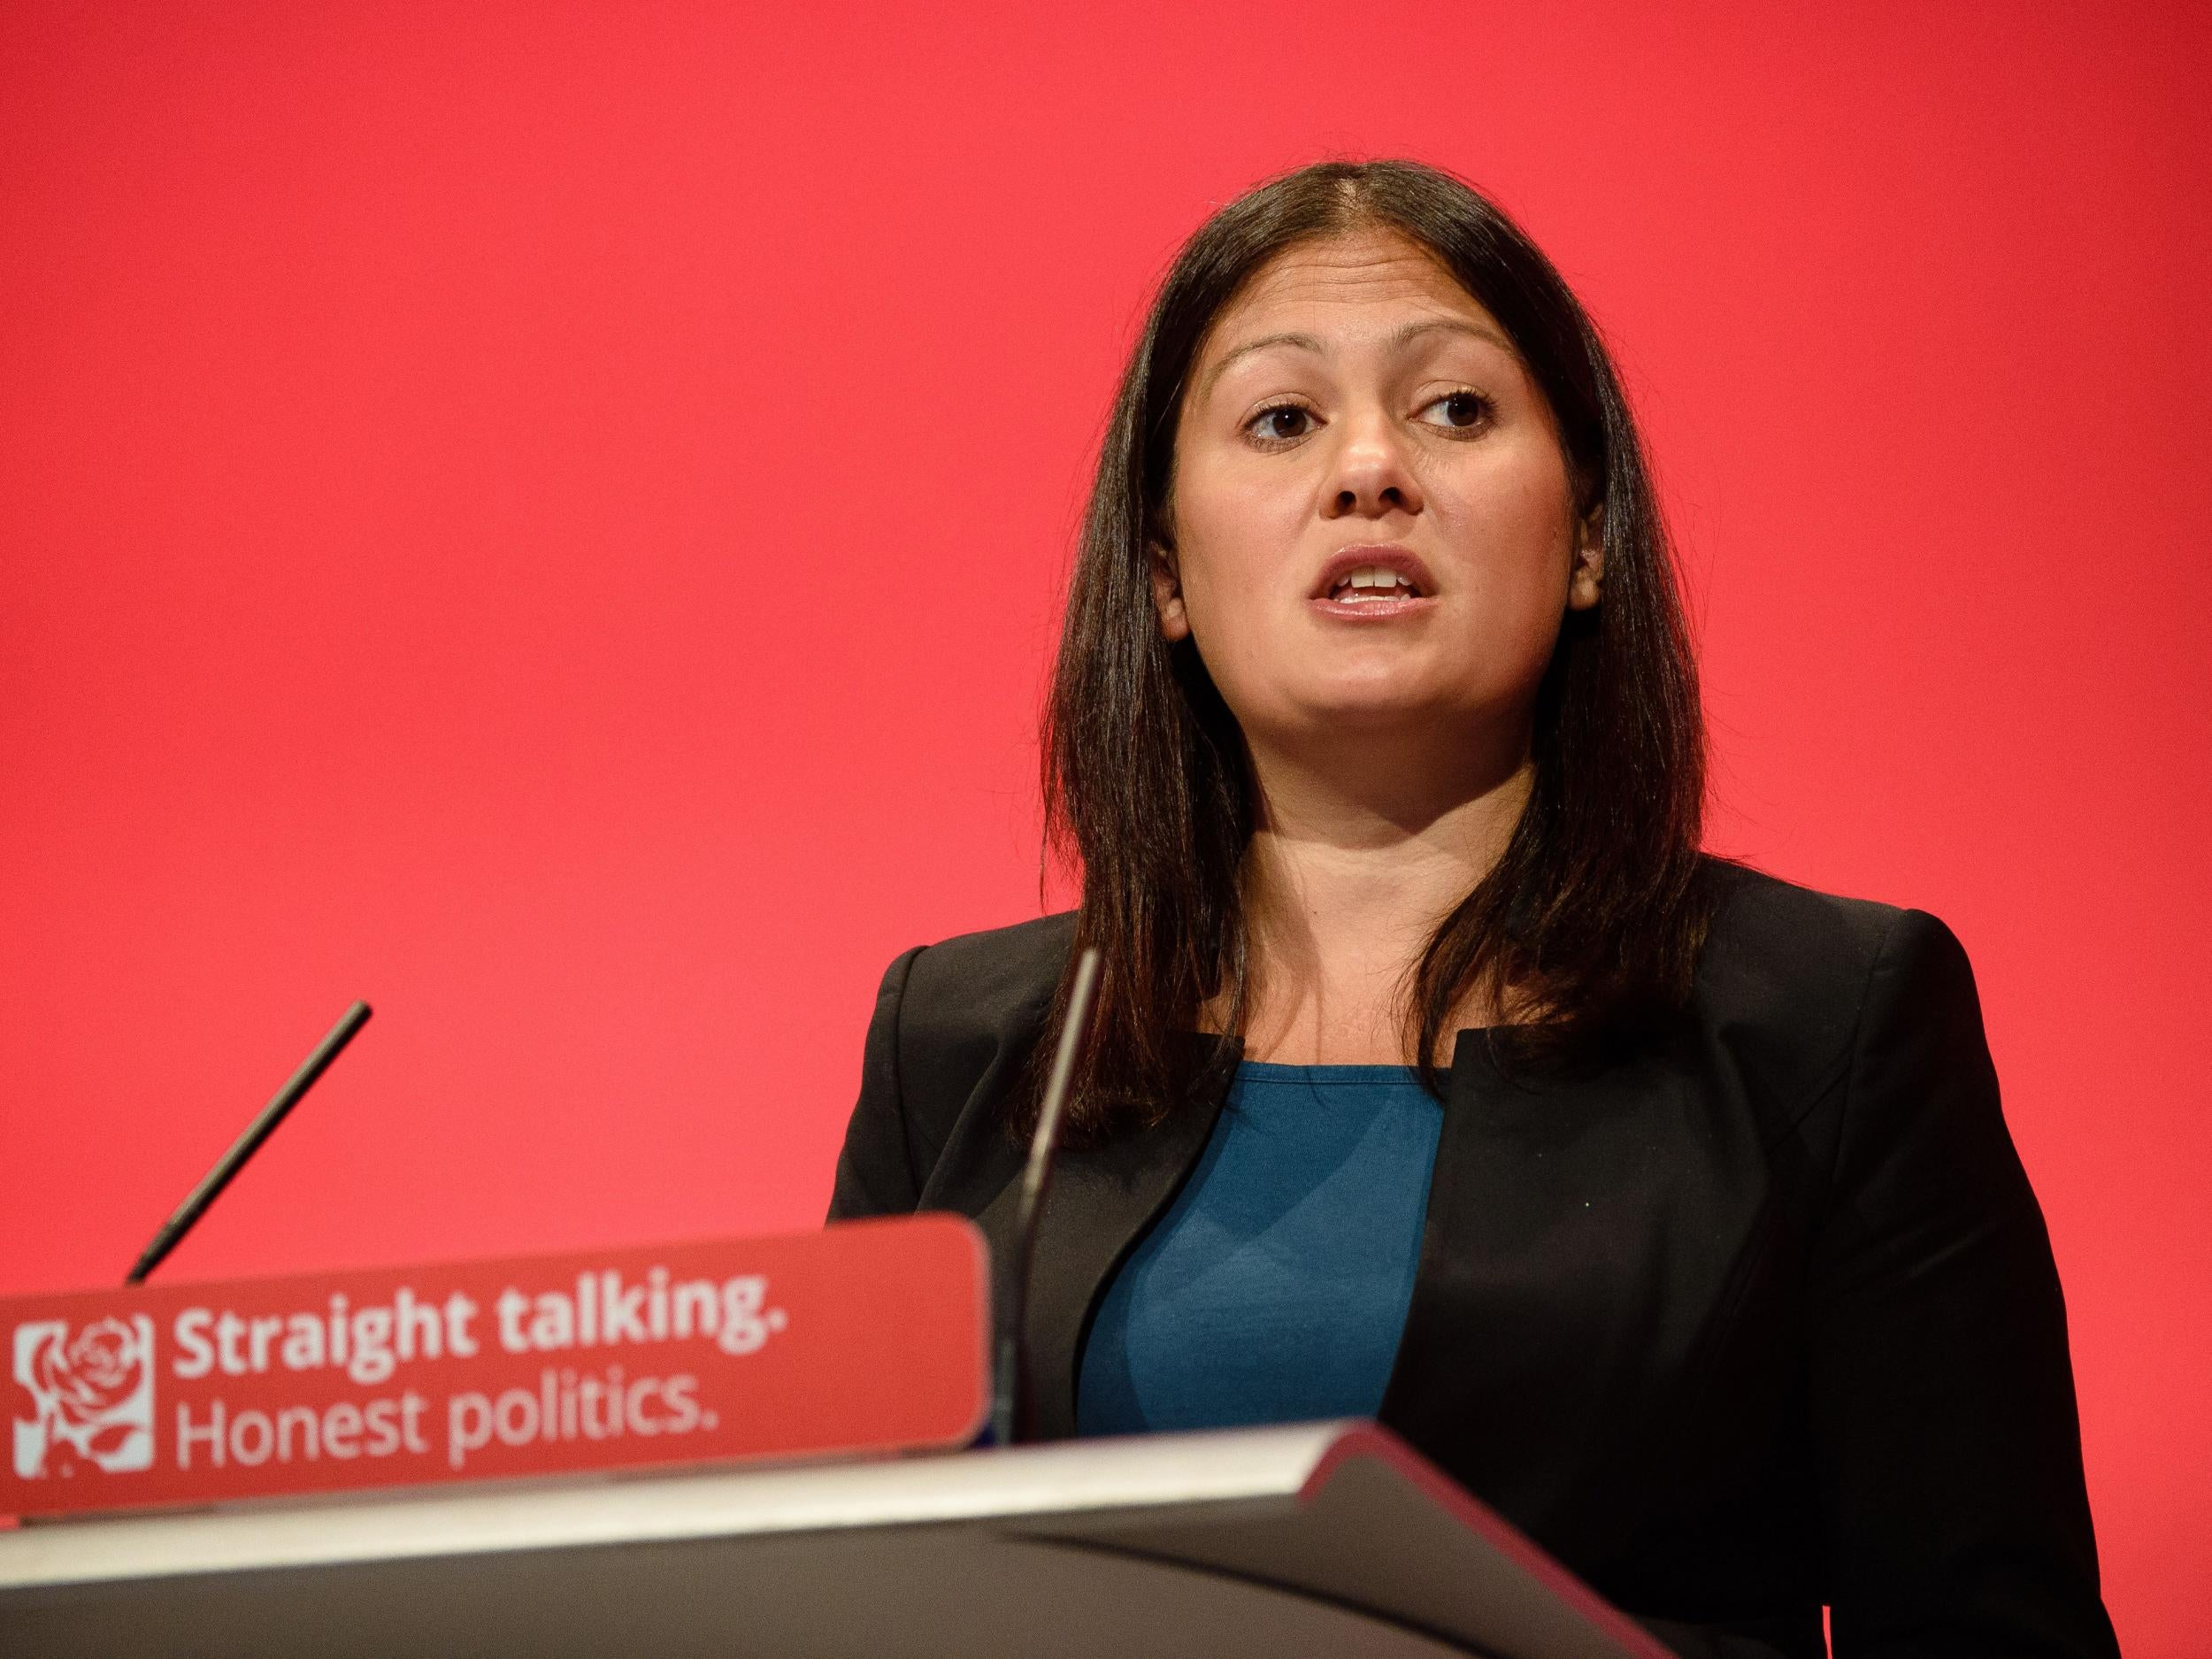 Labour leadership: Lisa Nandy declares ambition to succeed Jeremy Corbyn as left-wingers endorse Rebecca Long-Bailey for top job